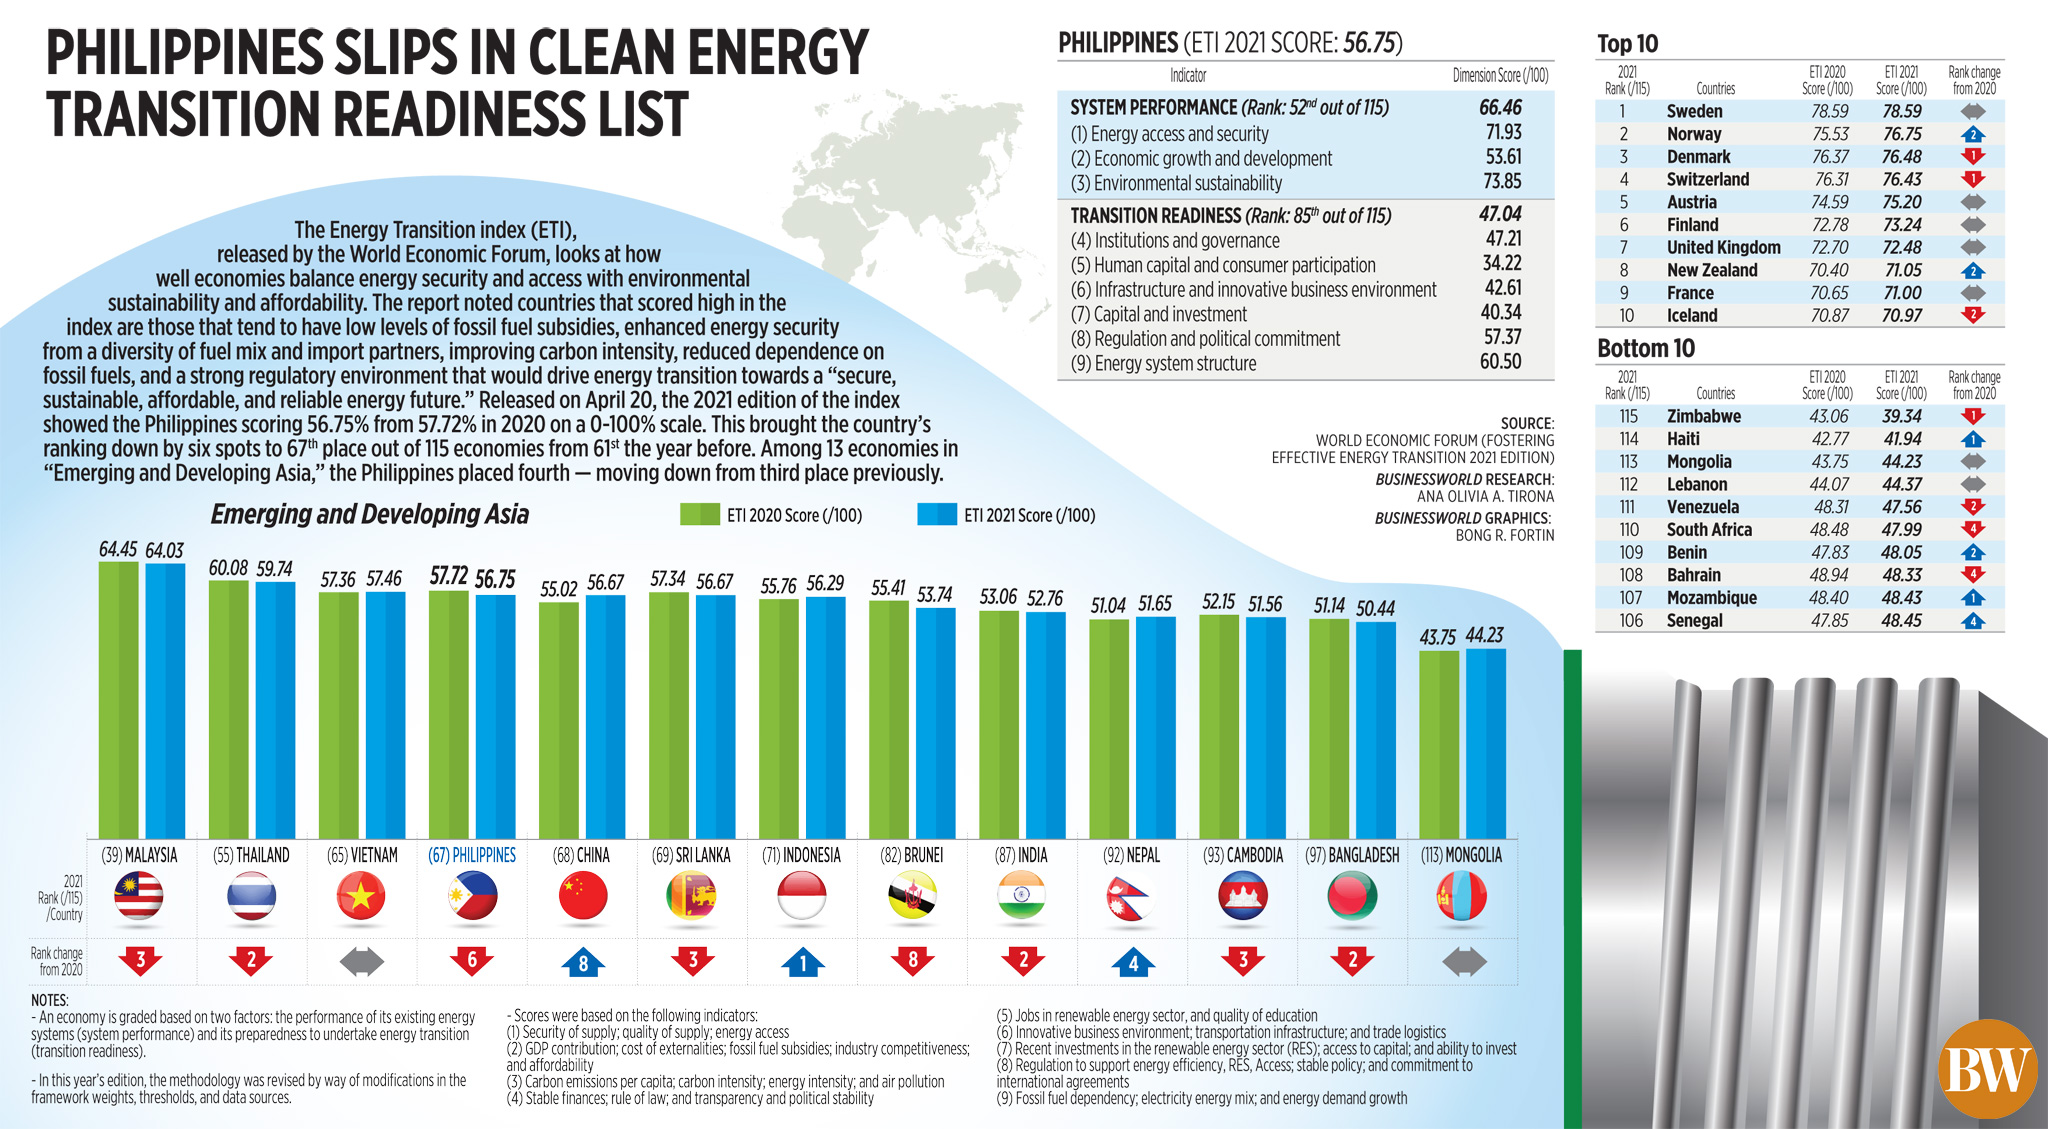 Philippines slips in clean energy transition readiness list